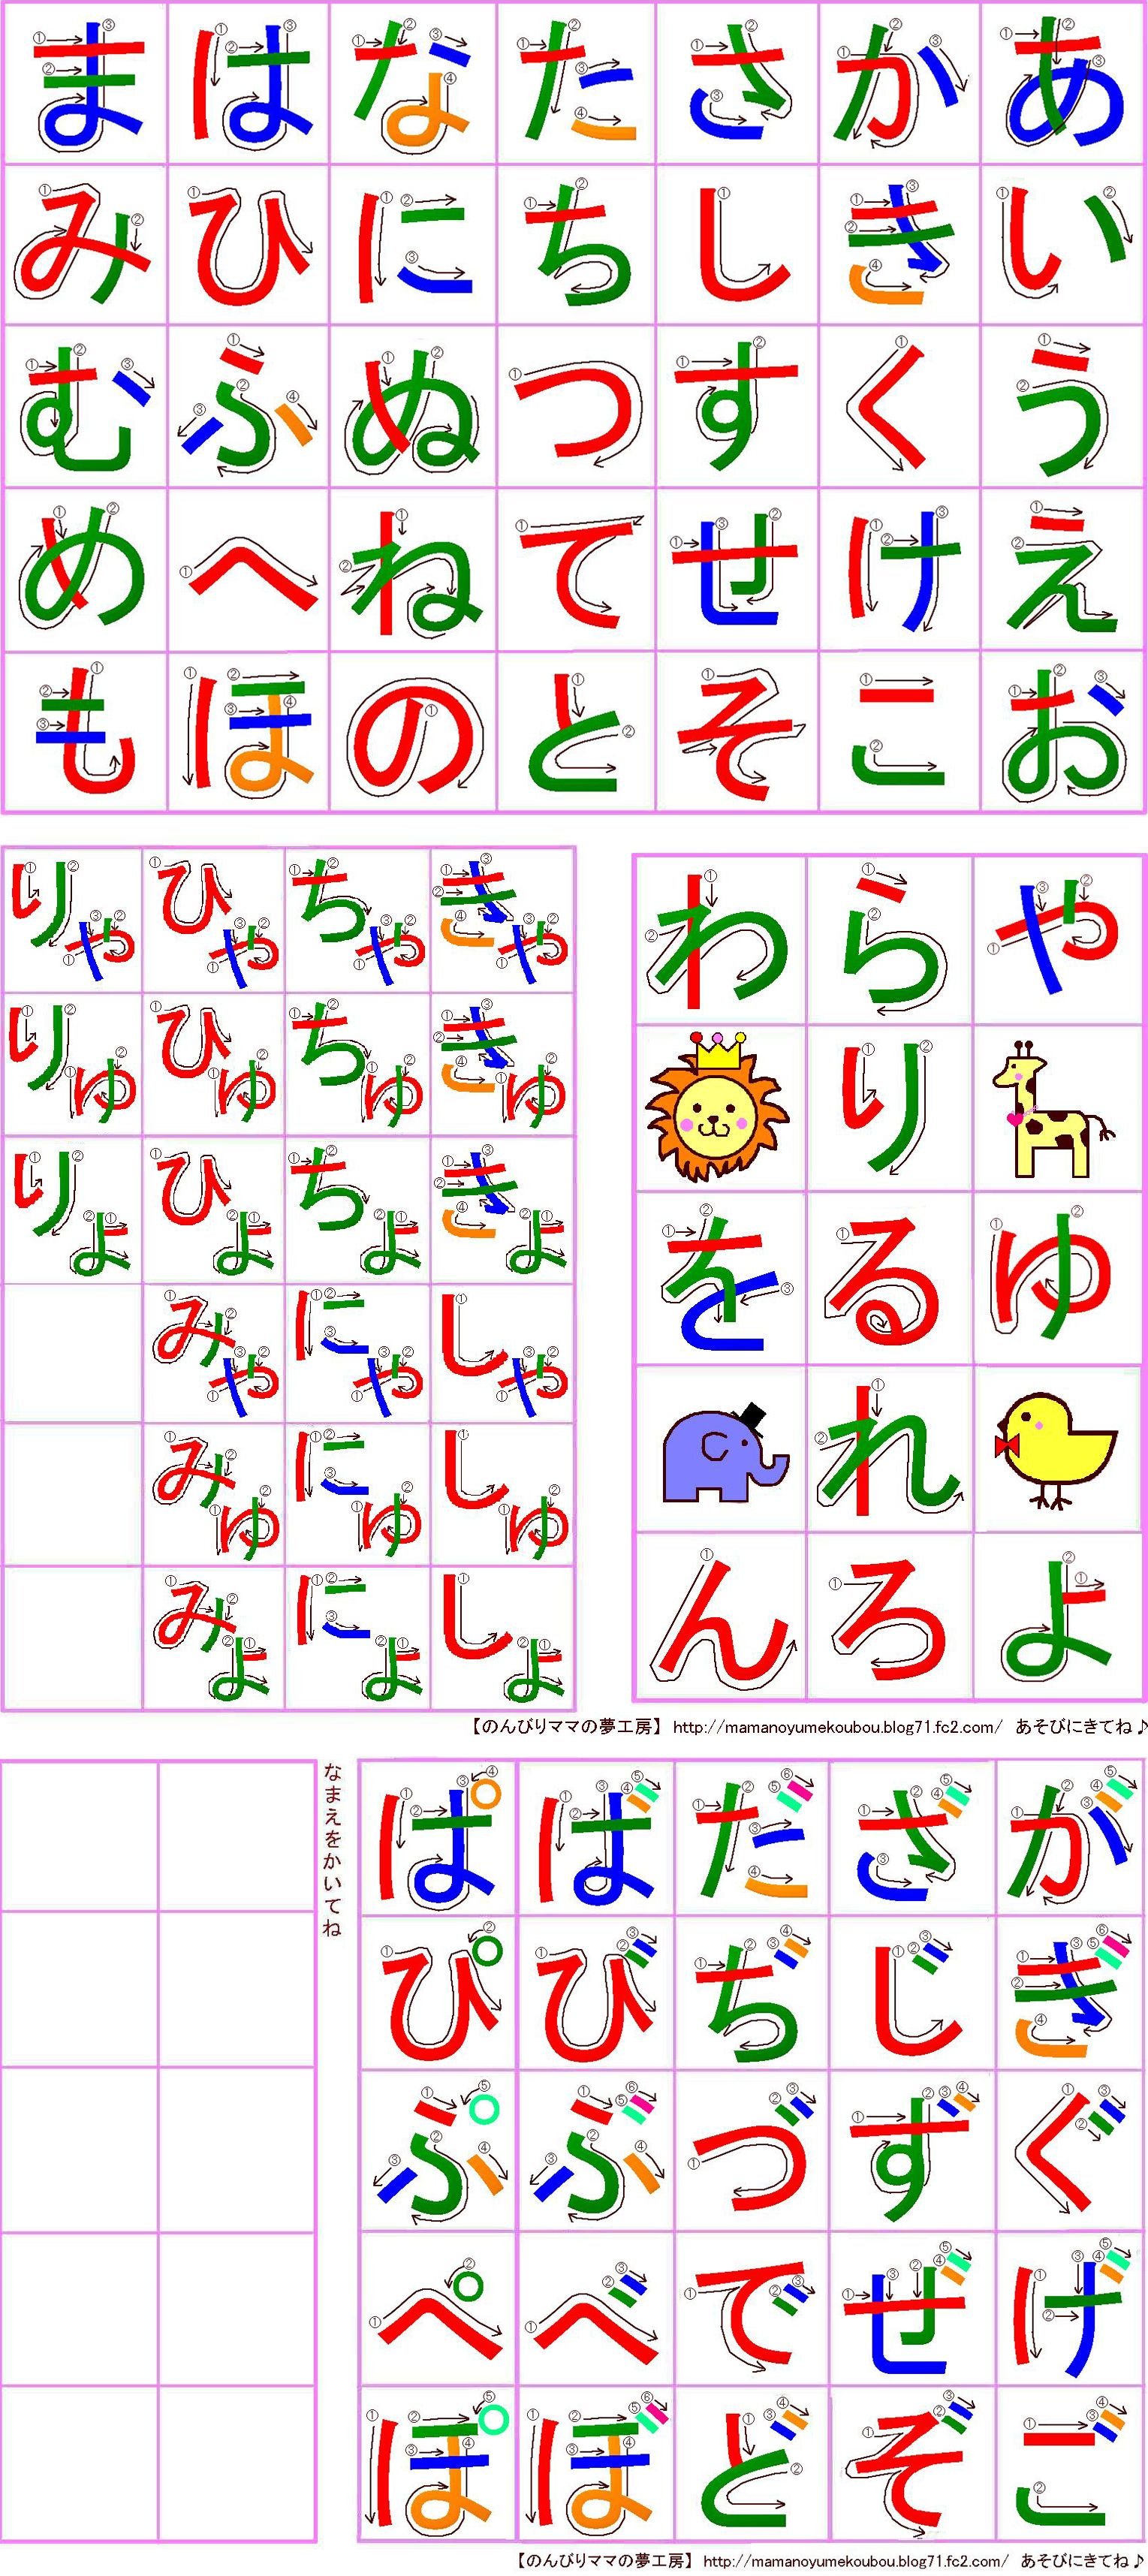 27 Hiragana Charts Stroke Order Practice Mnemonics And More